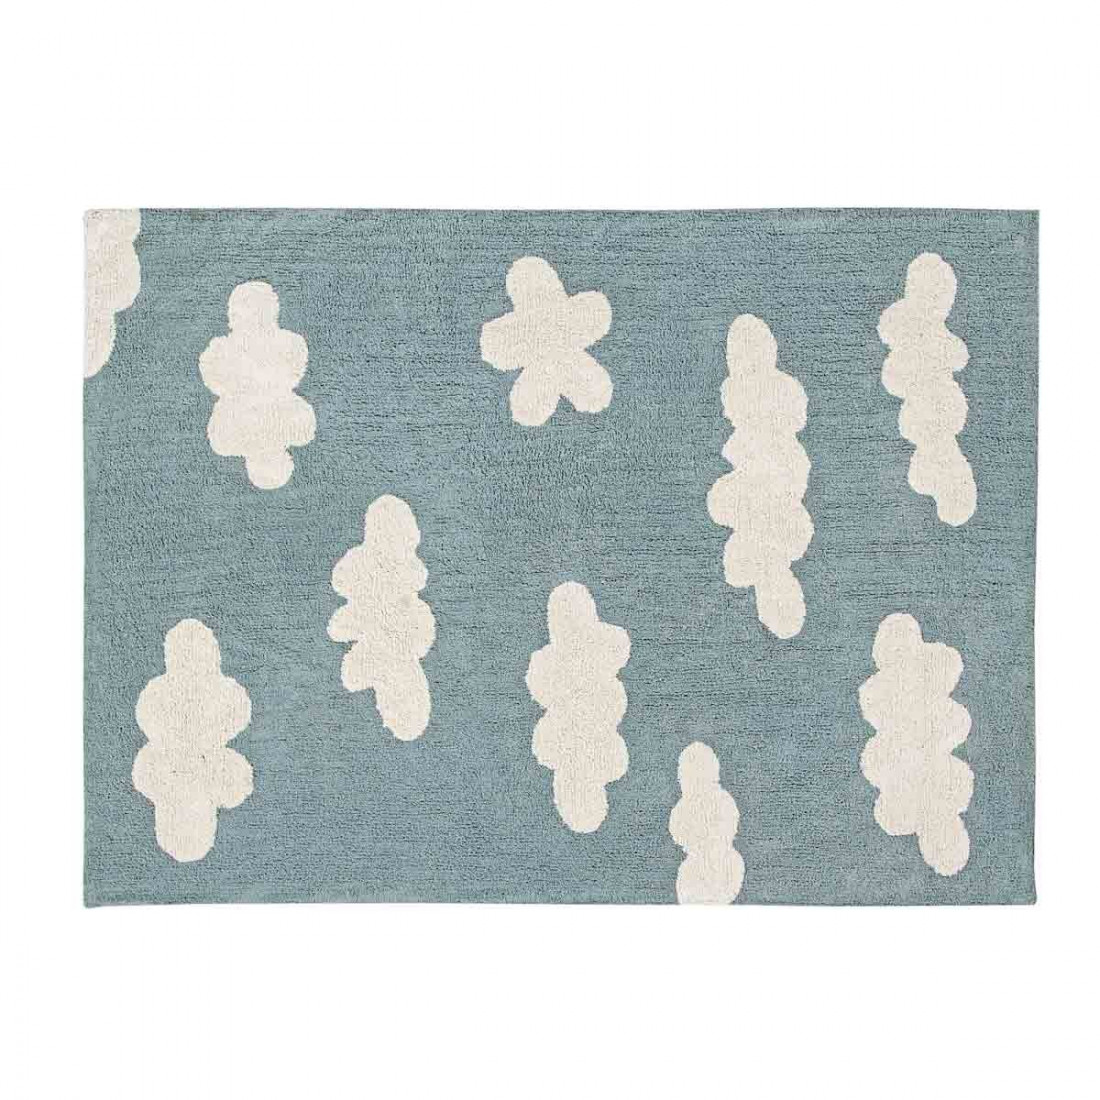 tapis enfant coton lavable bleu vintage nuages blanc lorena canals ma chambramoi. Black Bedroom Furniture Sets. Home Design Ideas